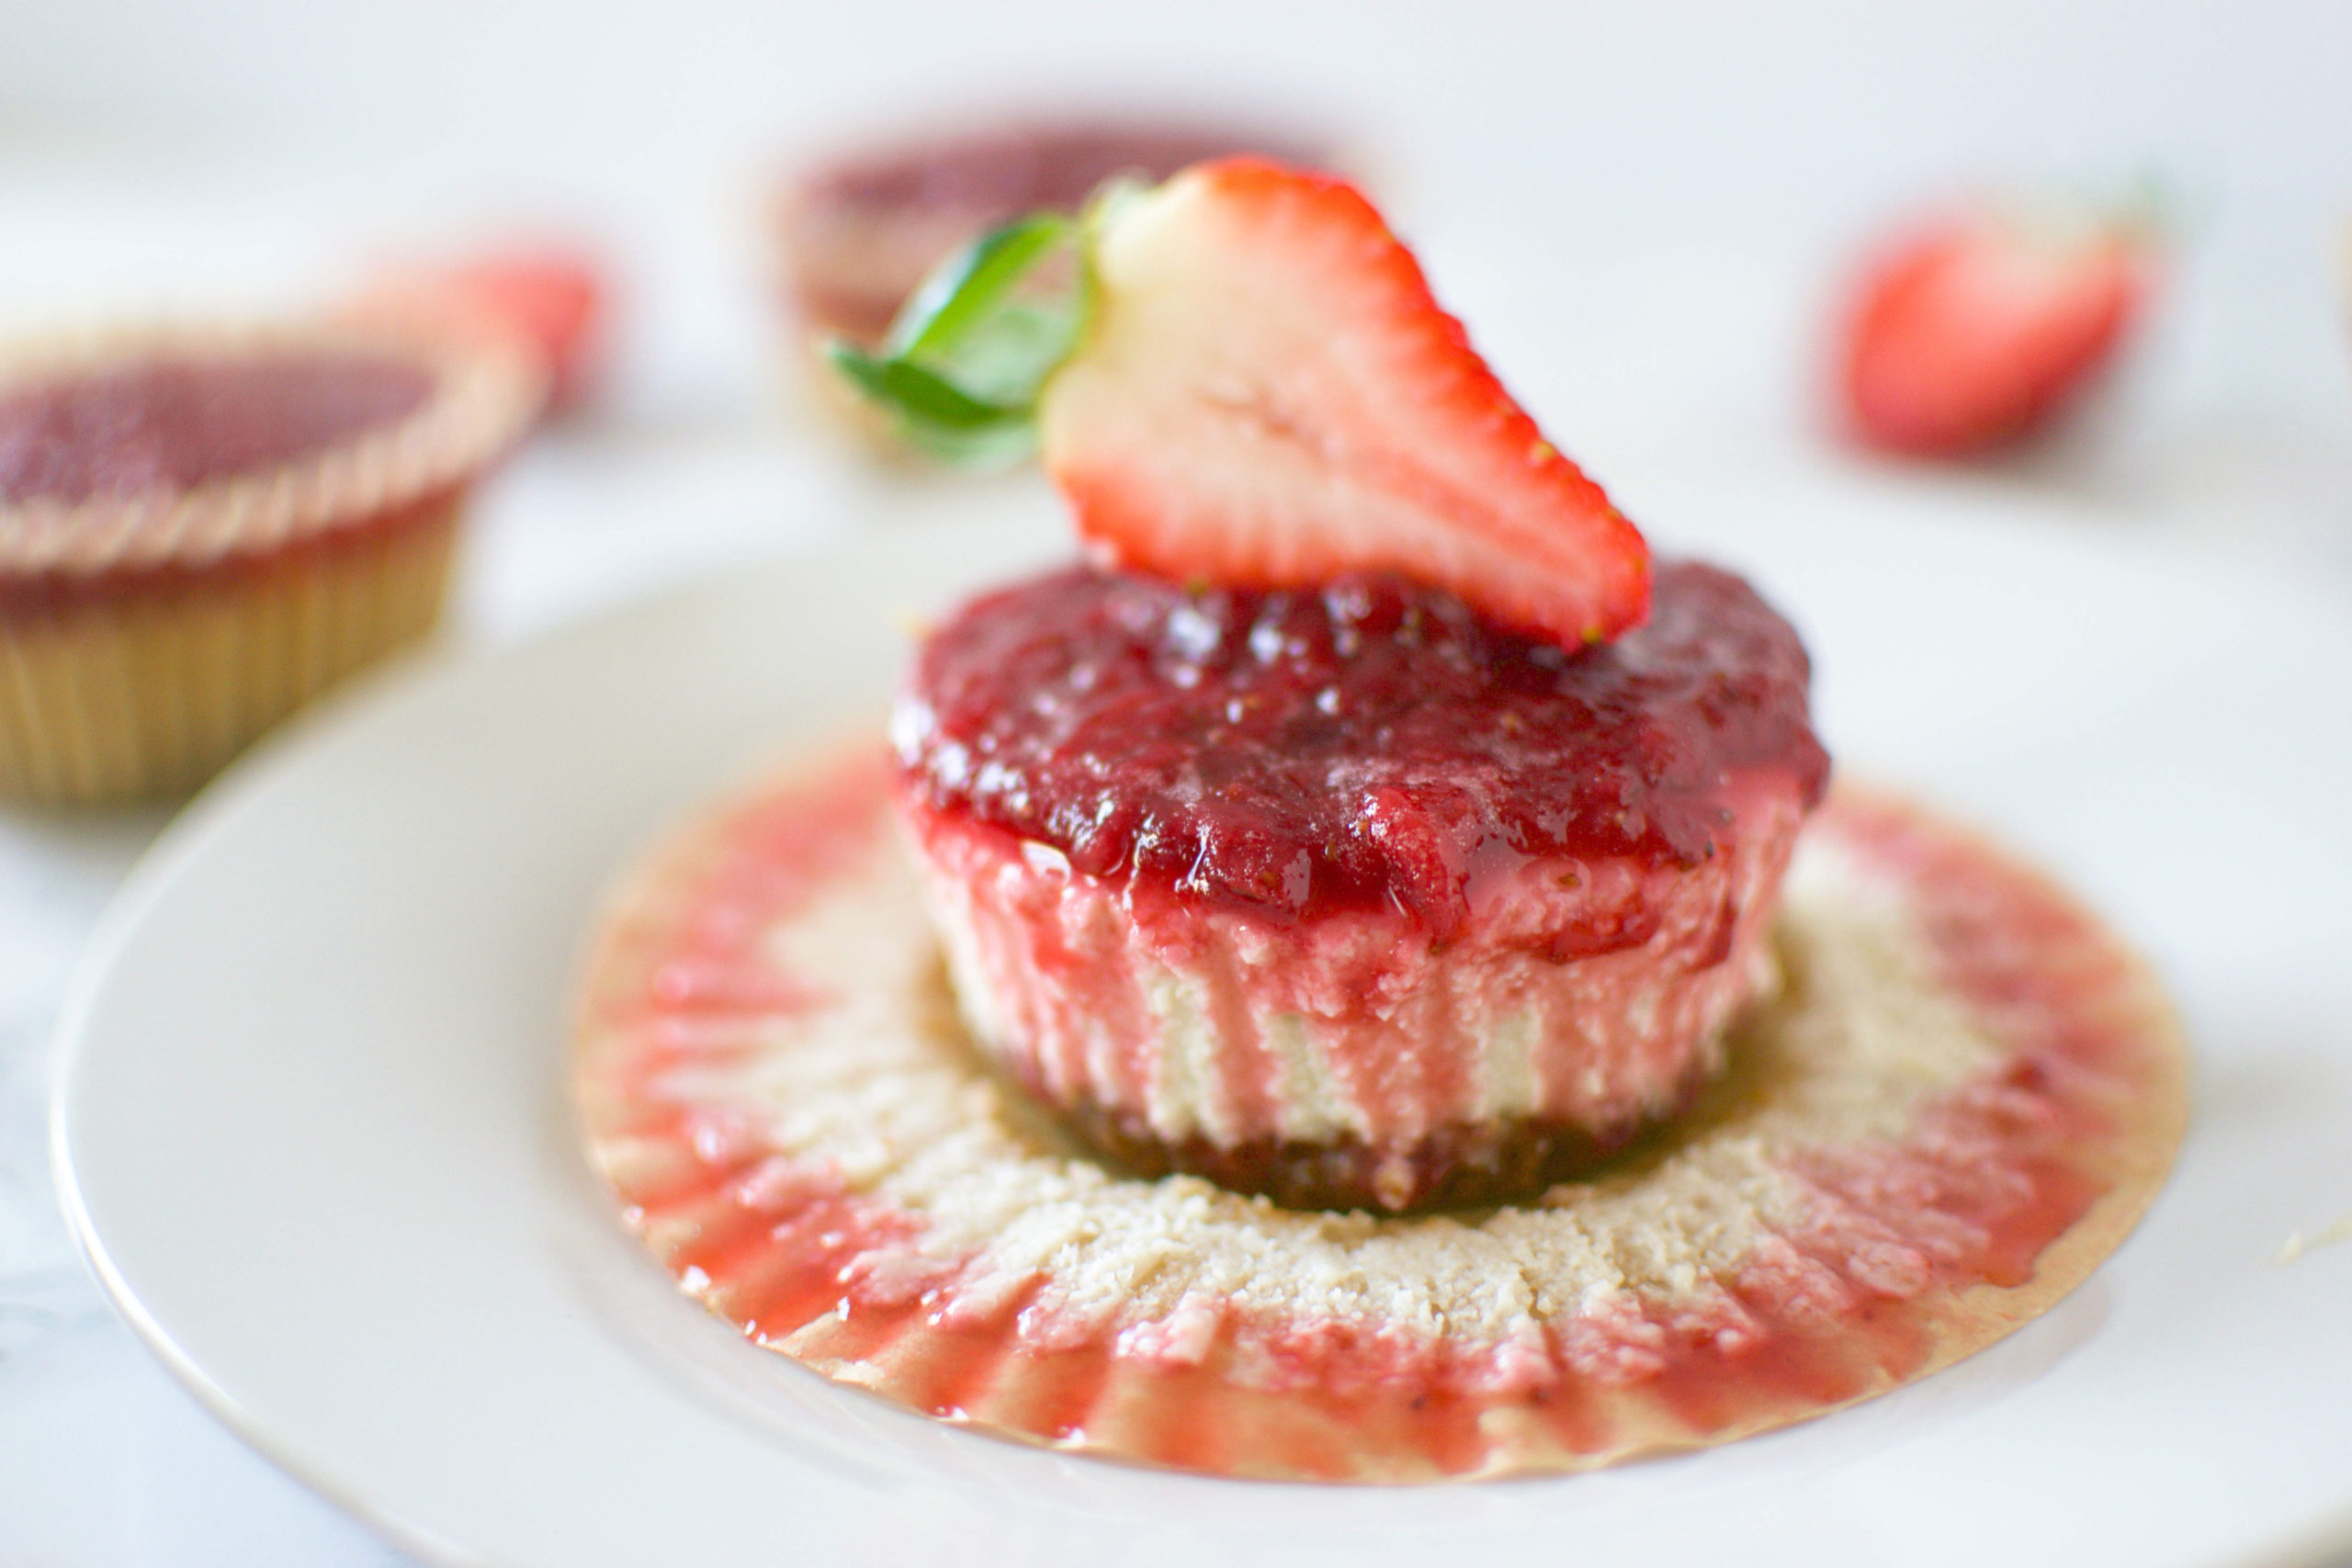 Vegan Strawberry Cheesecake Bites